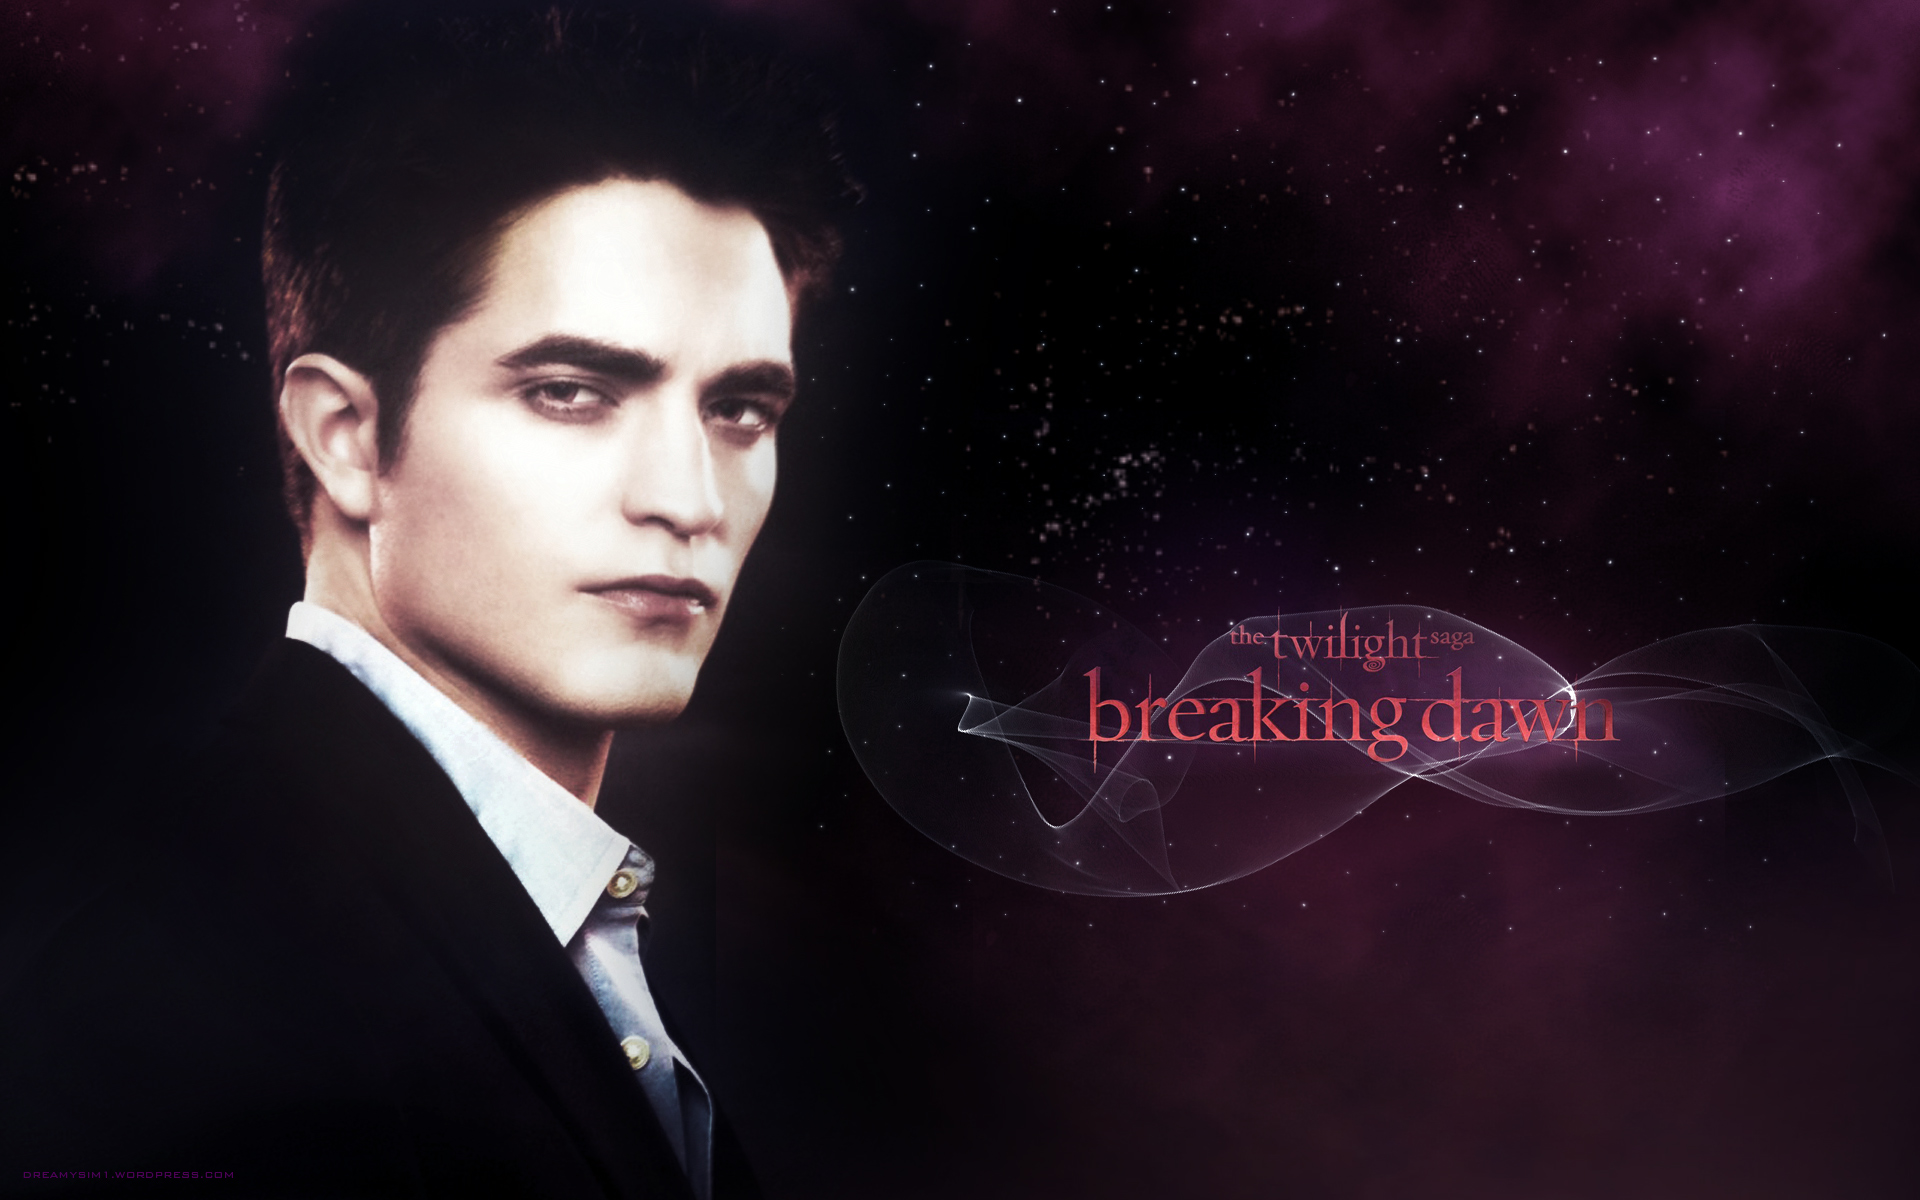 edward wallpaper - twilight-series wallpaper